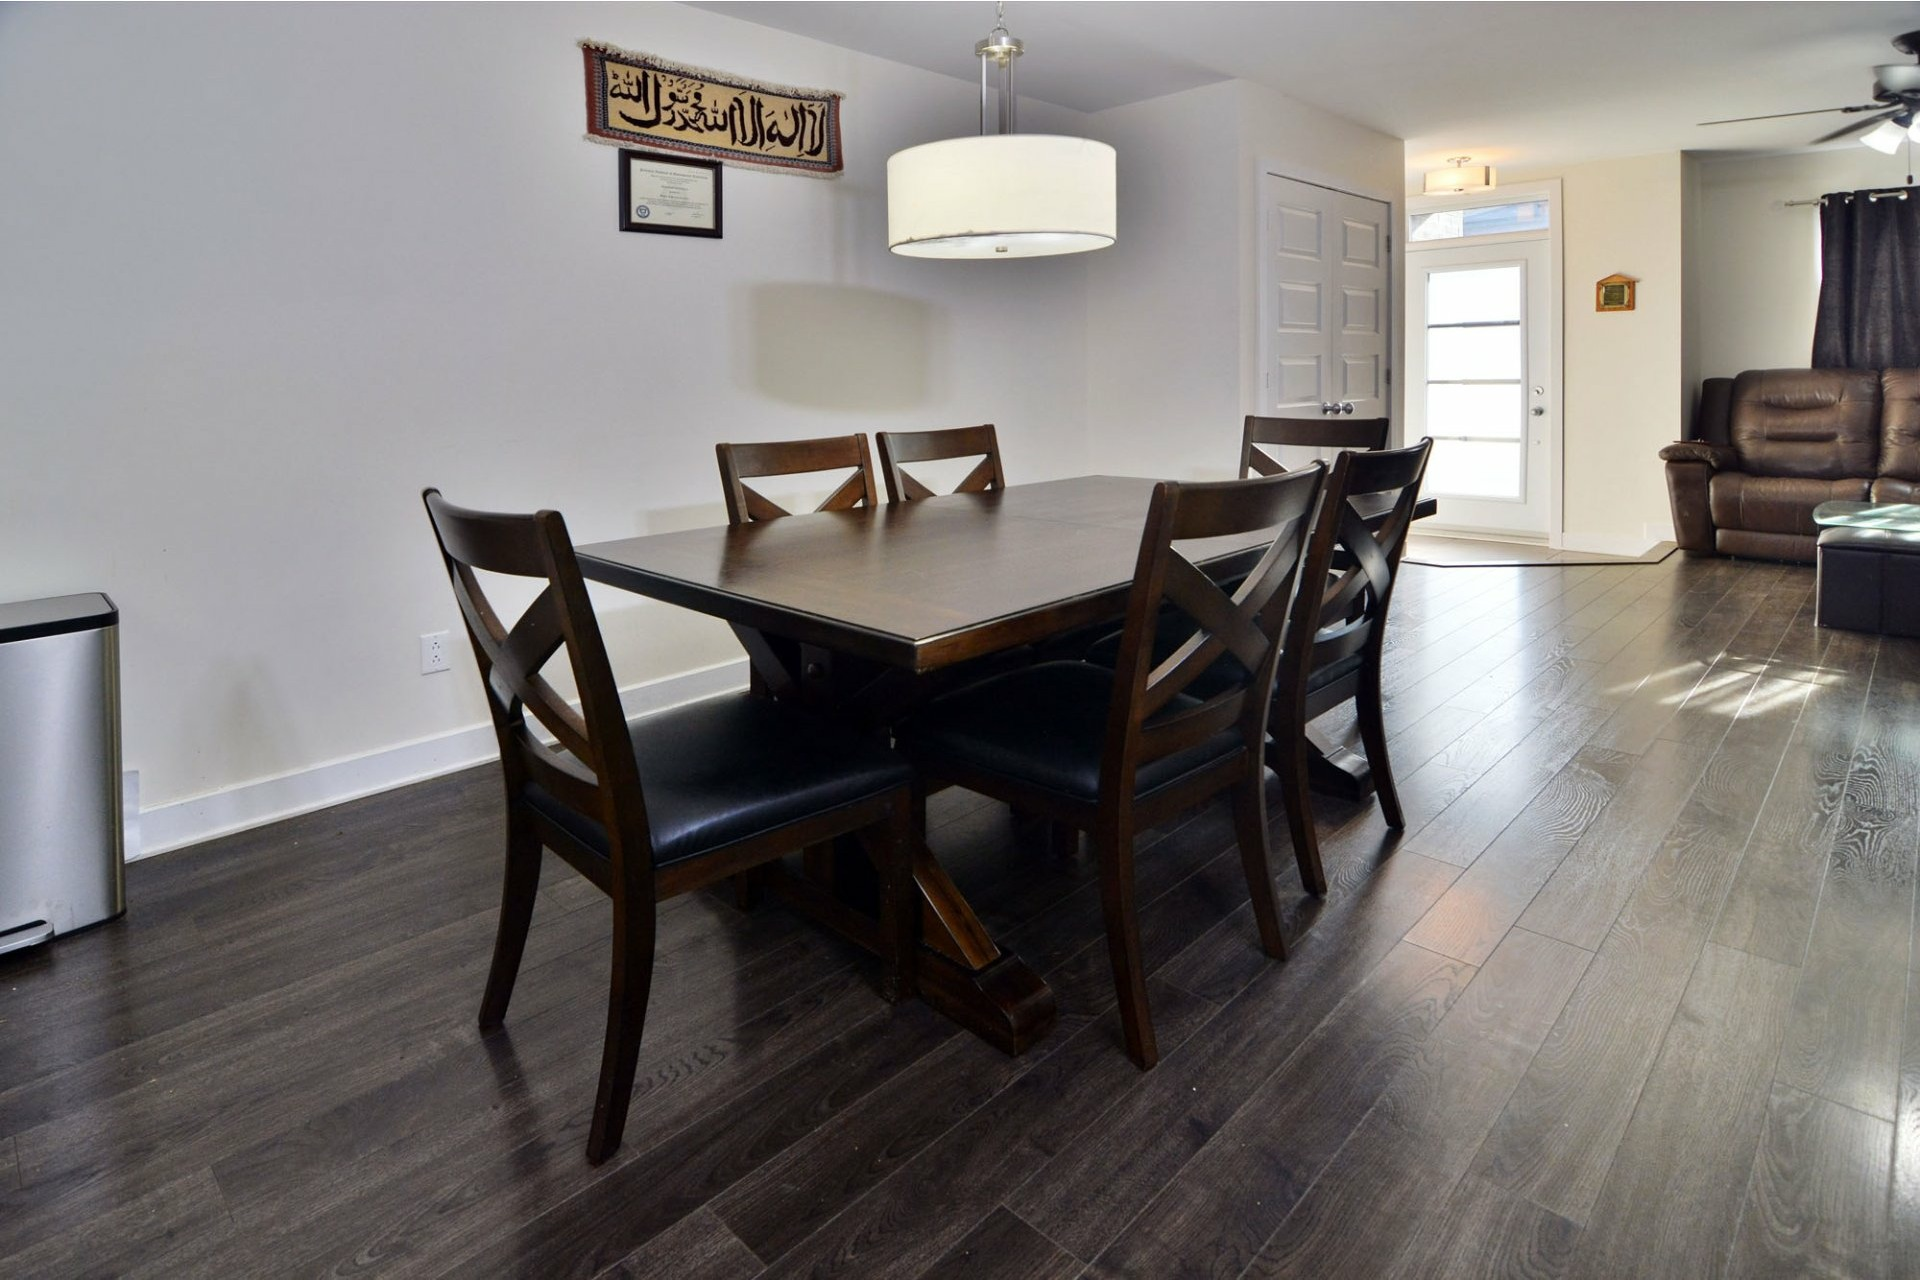 image 5 - House For sale Vaudreuil-Dorion - 7 rooms